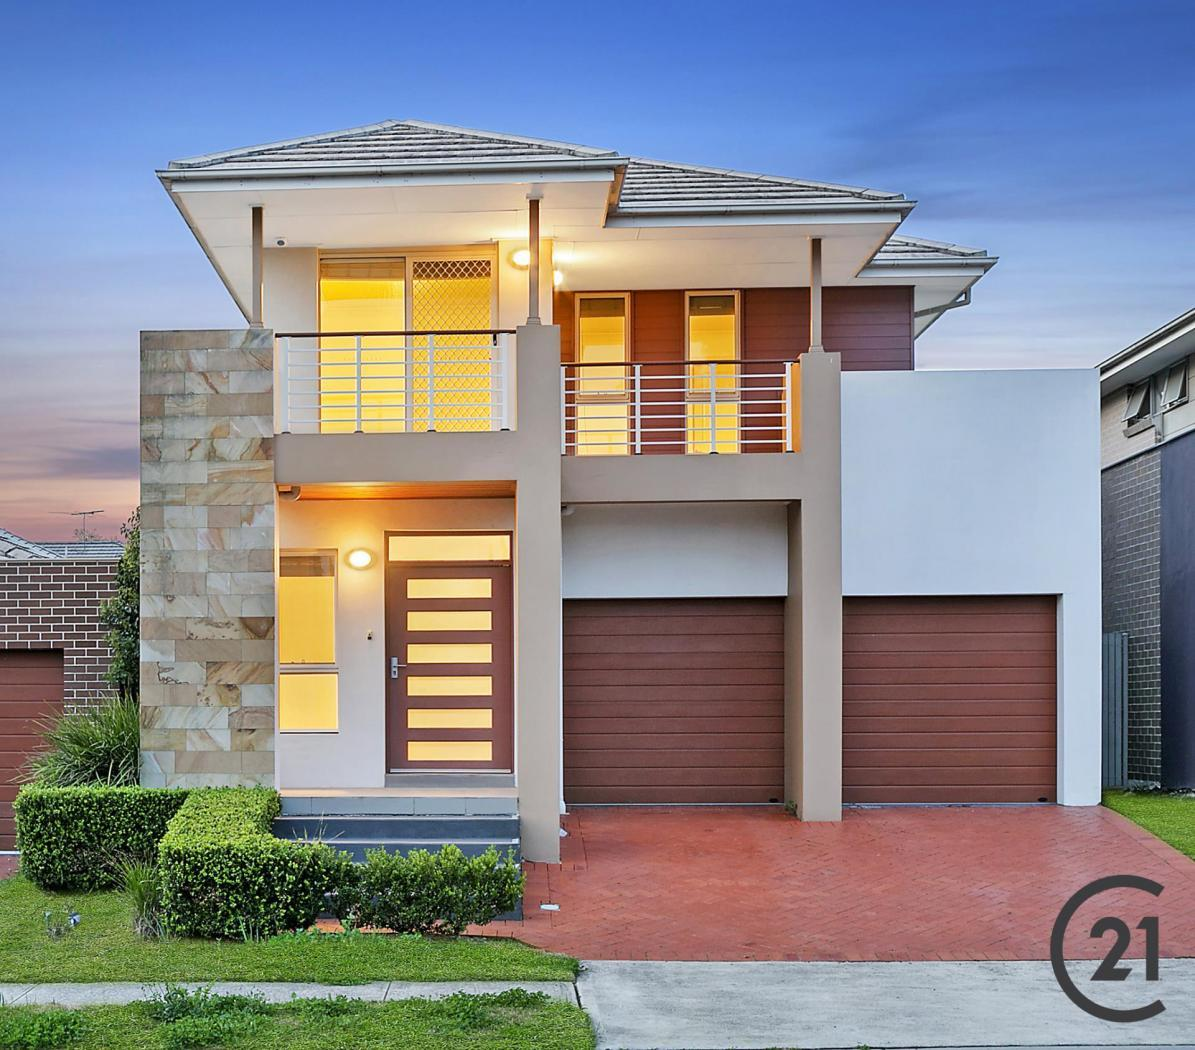 Apartments For Lease Kellyville: 208 Ridgeline Drive, The Ponds, NSW 2769 Sale & Rental